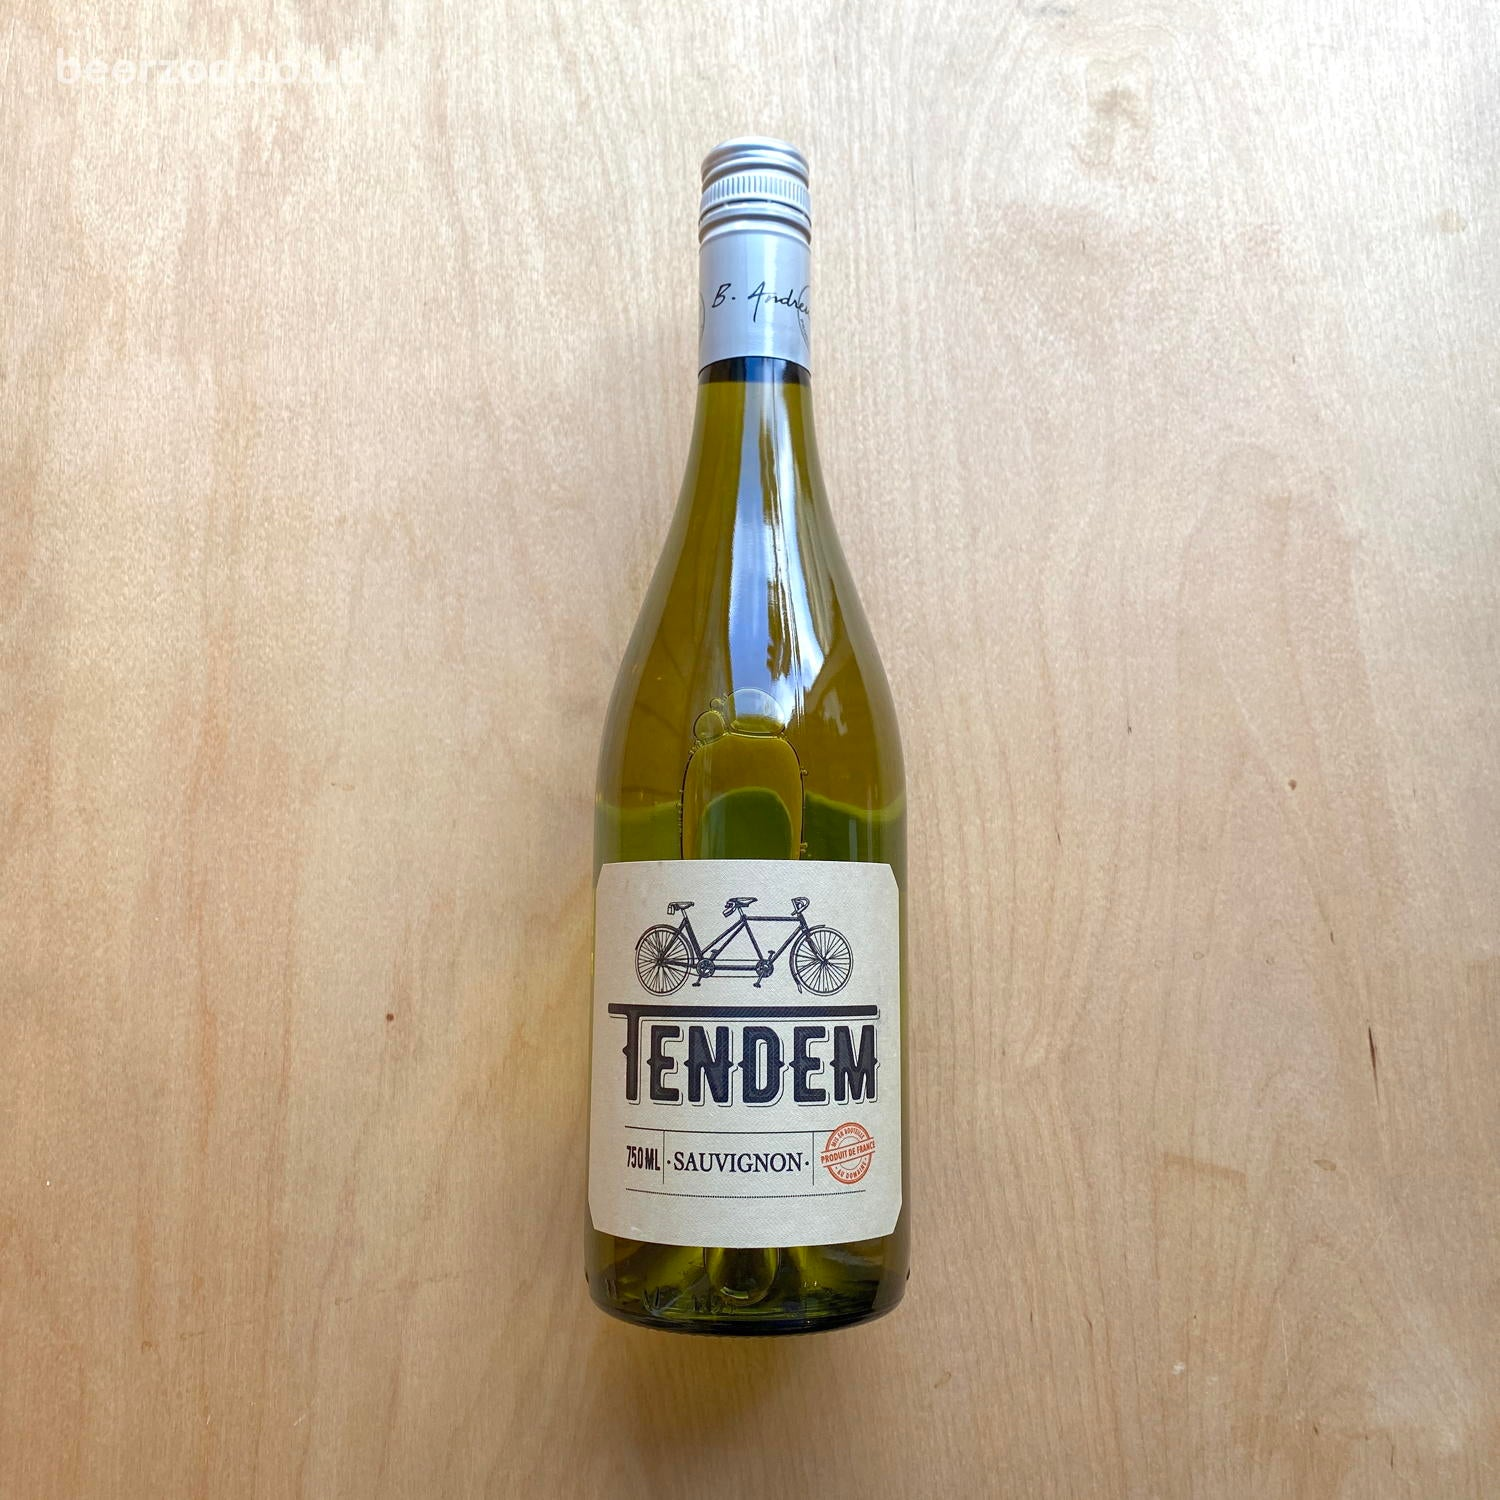 Tendem - Sauvignon 12% (750ml)